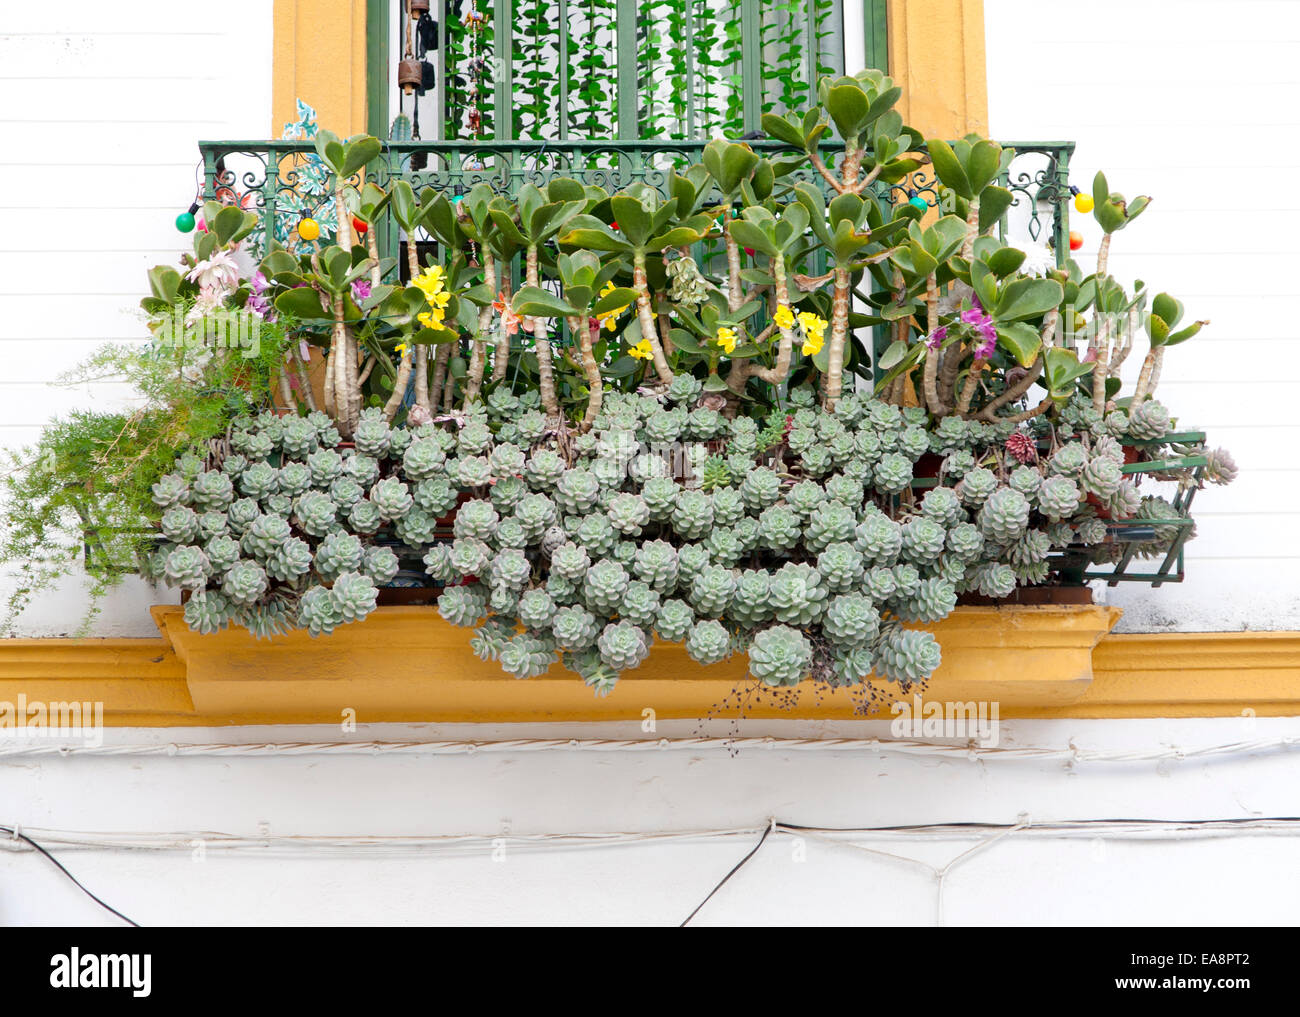 Unusual window box display of cacti in Barrio Macarena, Seville, Spain - Stock Image